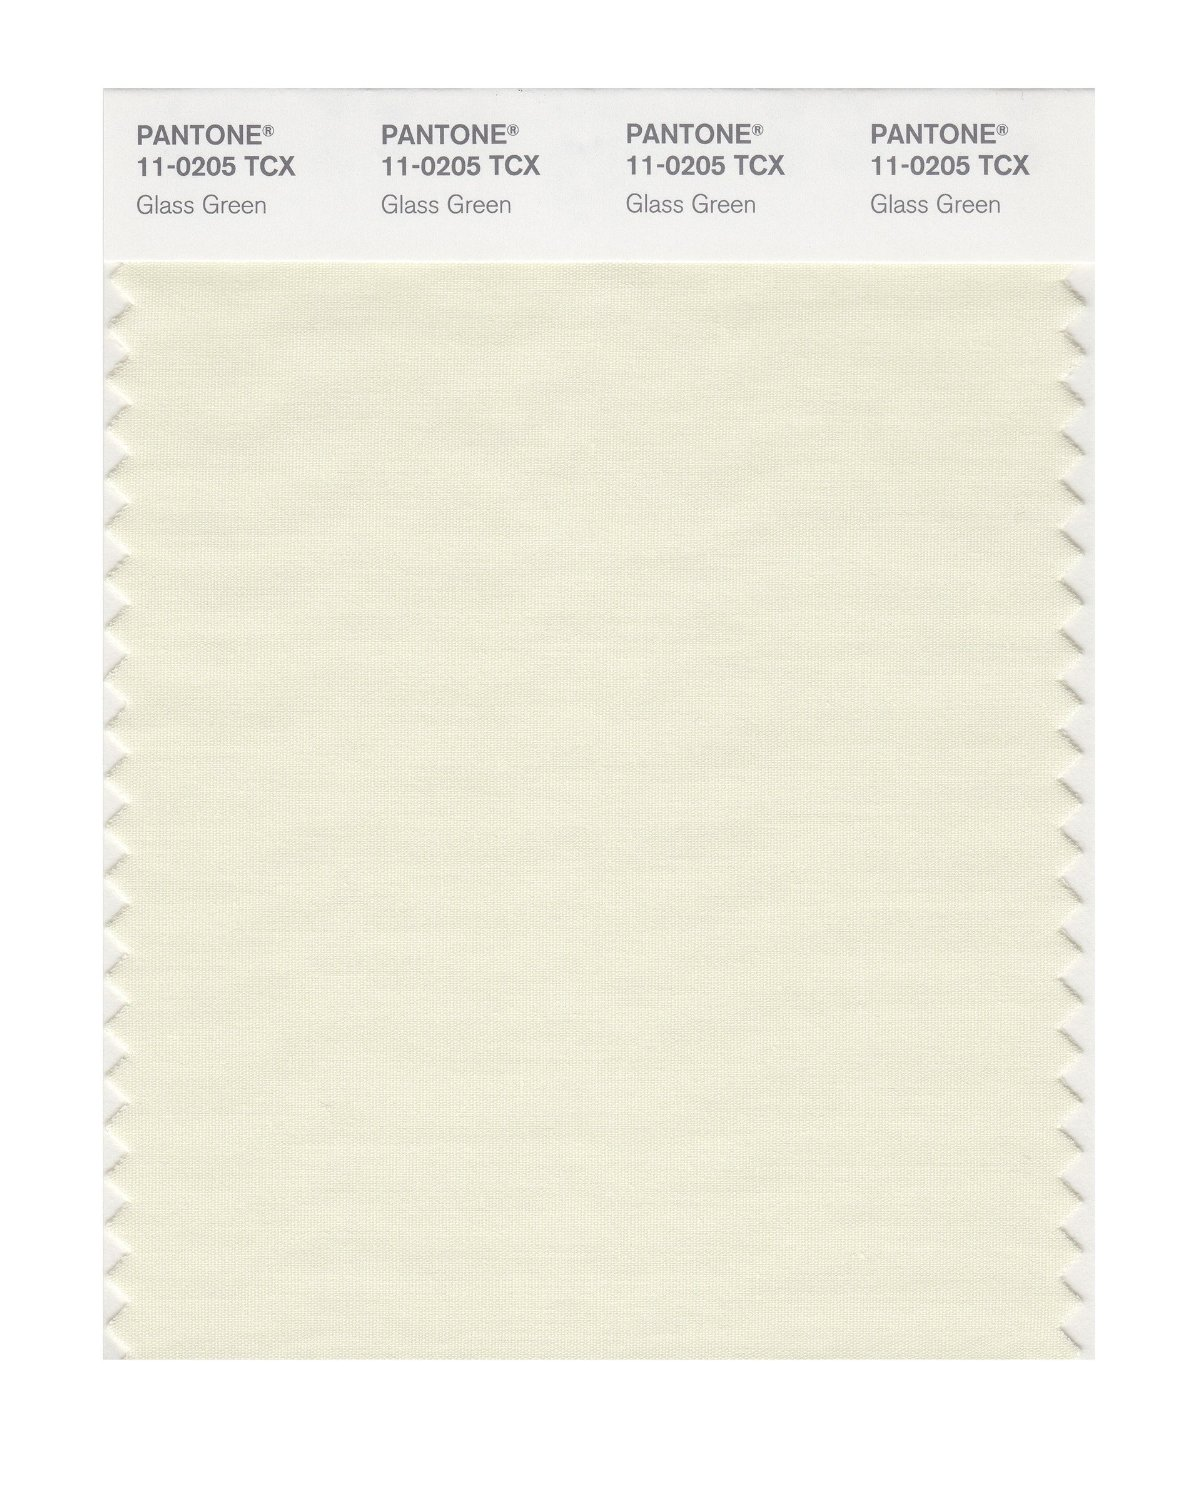 Pantone Smart Swatch 11-0205 Glass Green